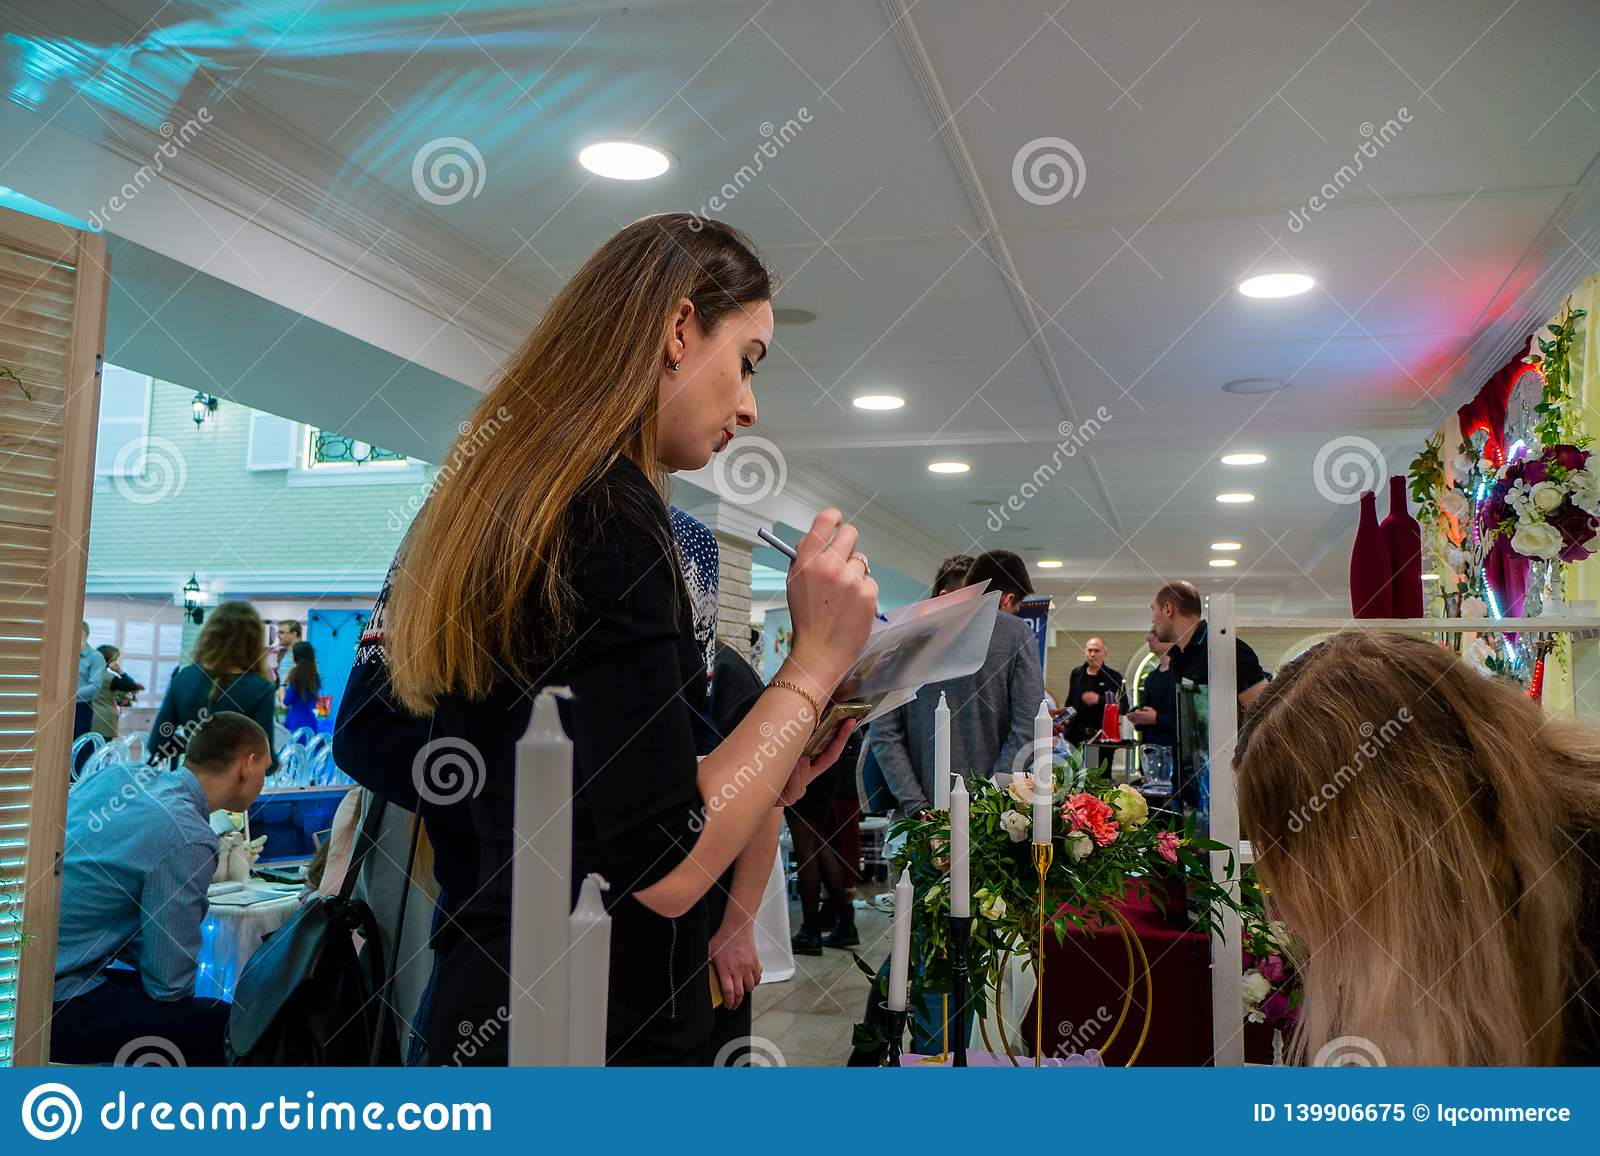 A Lady Checking A List At A Wedding Exhibition Editorial